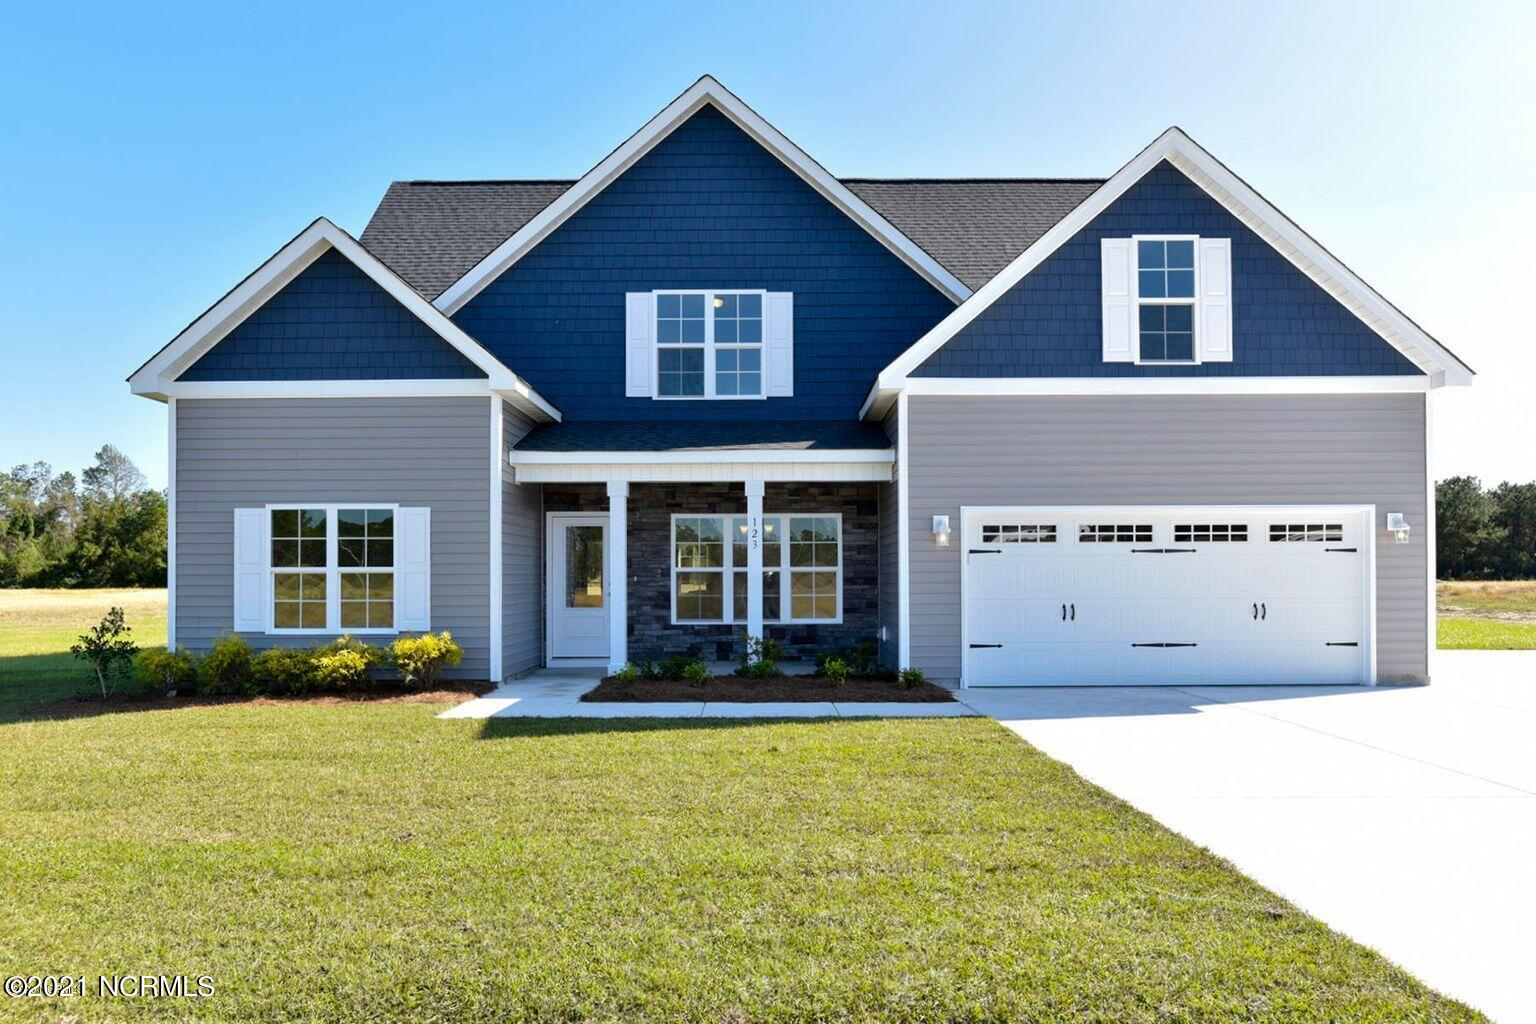 Introducing the ''Chicago'' floor plan at Beech Crest! This new home offers 4 bedrooms with a bonus room, 3 bathrooms, and a 2-car garage; at approximately 2,691 heated square feet! Located in a quiet country setting yet only minutes to local bases, schools and shopping! Featuring architectural shingles, low maintenance vinyl siding, energy efficient heat pump, a sodded front yard, and professional landscaping. Interior features include designer inspired paint, flooring, lighting, cabinets and countertops. In addition, you will enjoy 9' smooth ceilings on the first floor, ceiling fans in the living room and master bedroom, plus stainless-steel appliances! Contact me today for more information.